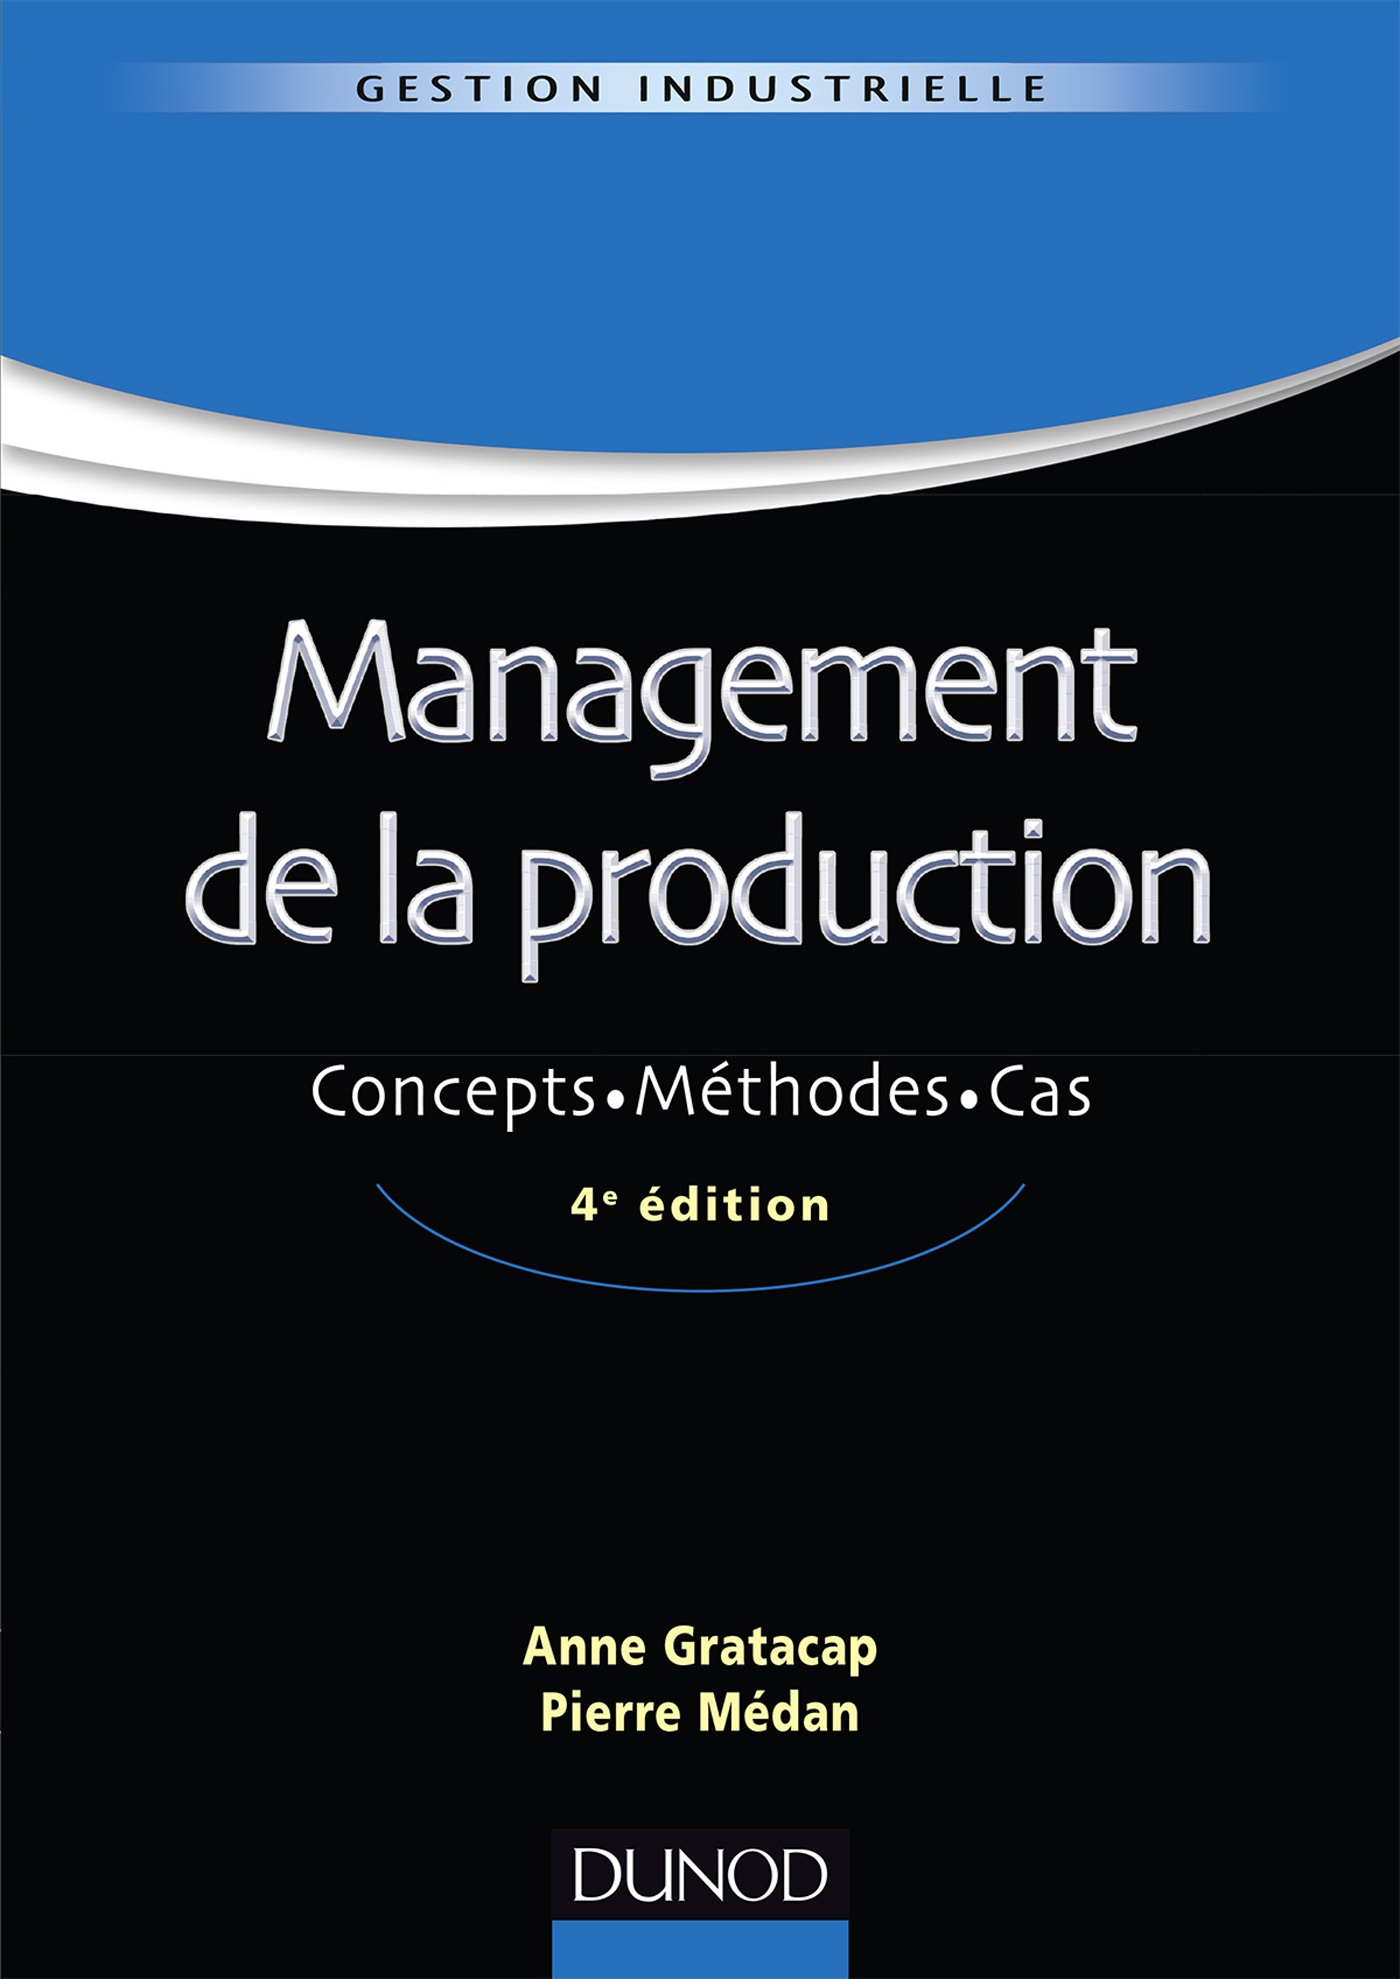 Management de la production - 4ème édition